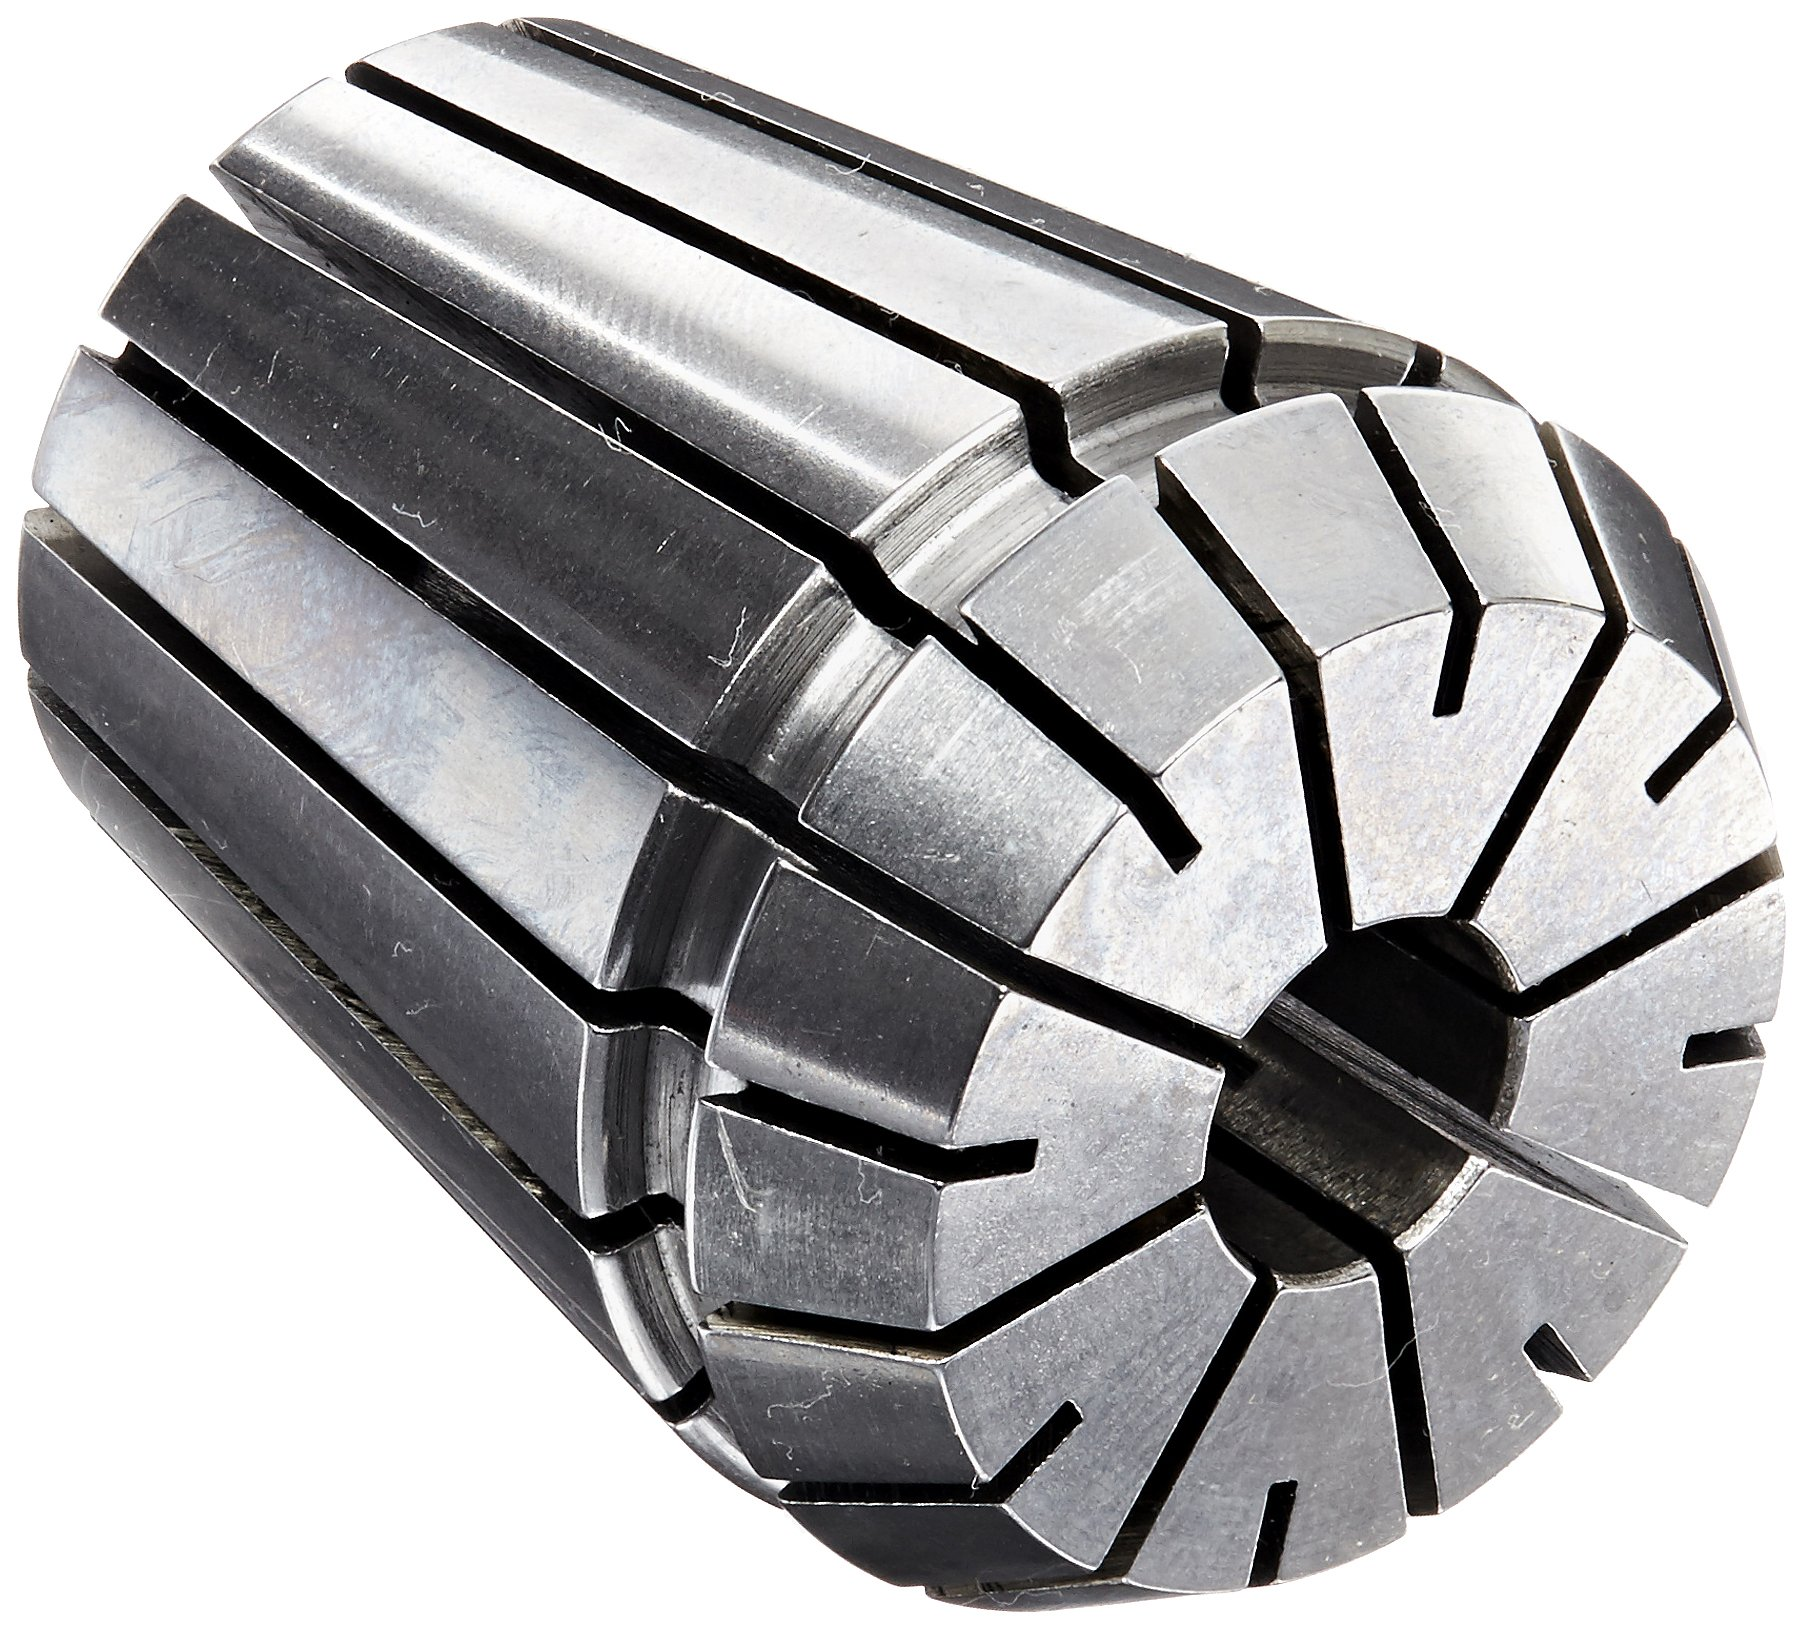 Dorian Tool ER32 Alloy Steel Ultra Precision Collet, 0.336'' - 0.375'' Hole Size by Dorian Tool